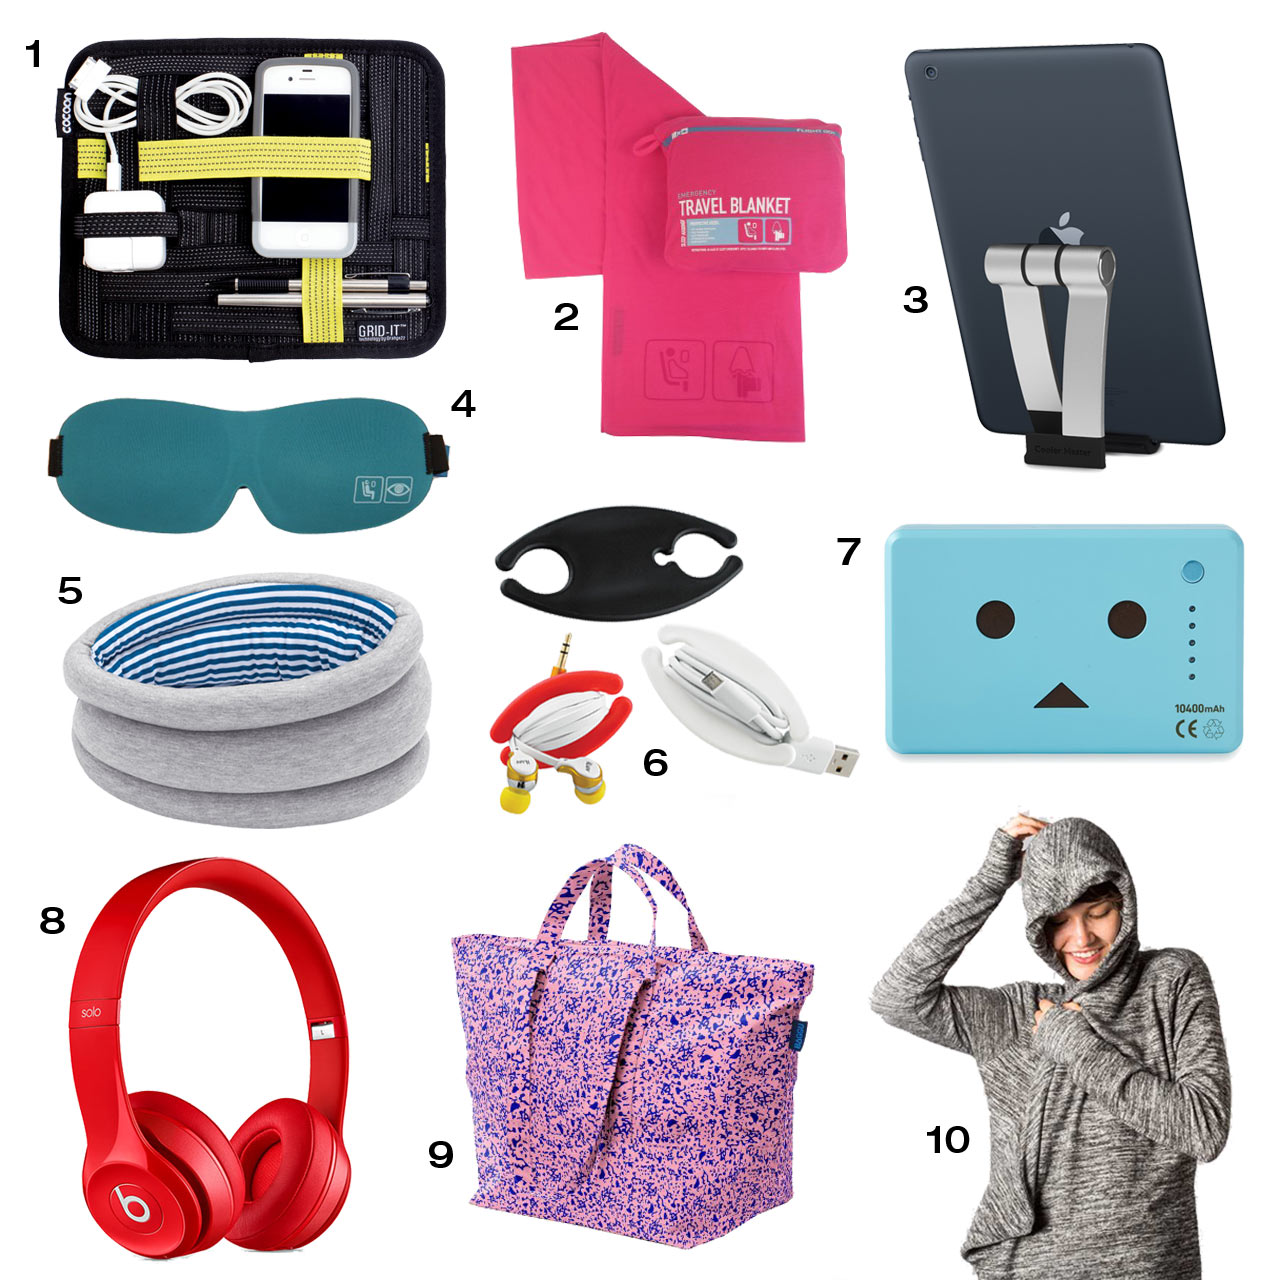 10 Travel Accessories For Your Next Trip Design Milk